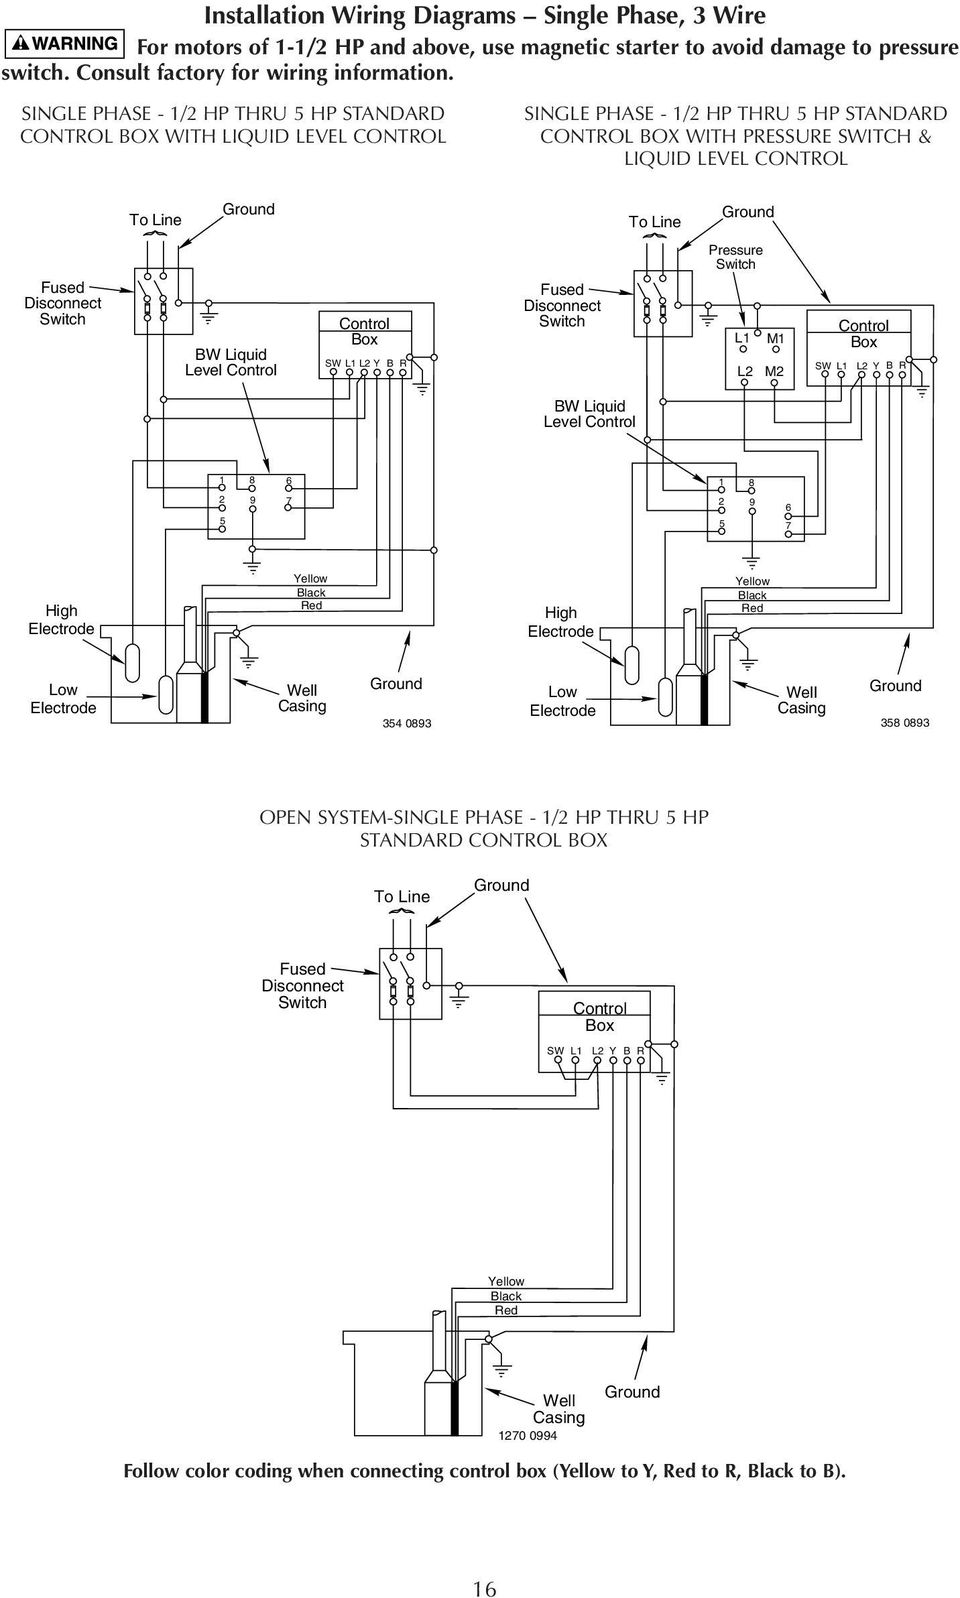 Owners Manual Installation And Operating Instructions 4 Diagrams Three Phase Motors Ydelta 6 Leads Us Pressure Bw Liquid Level Control Box Sw L1 L2 Y B R M1 M2 17 Wiring